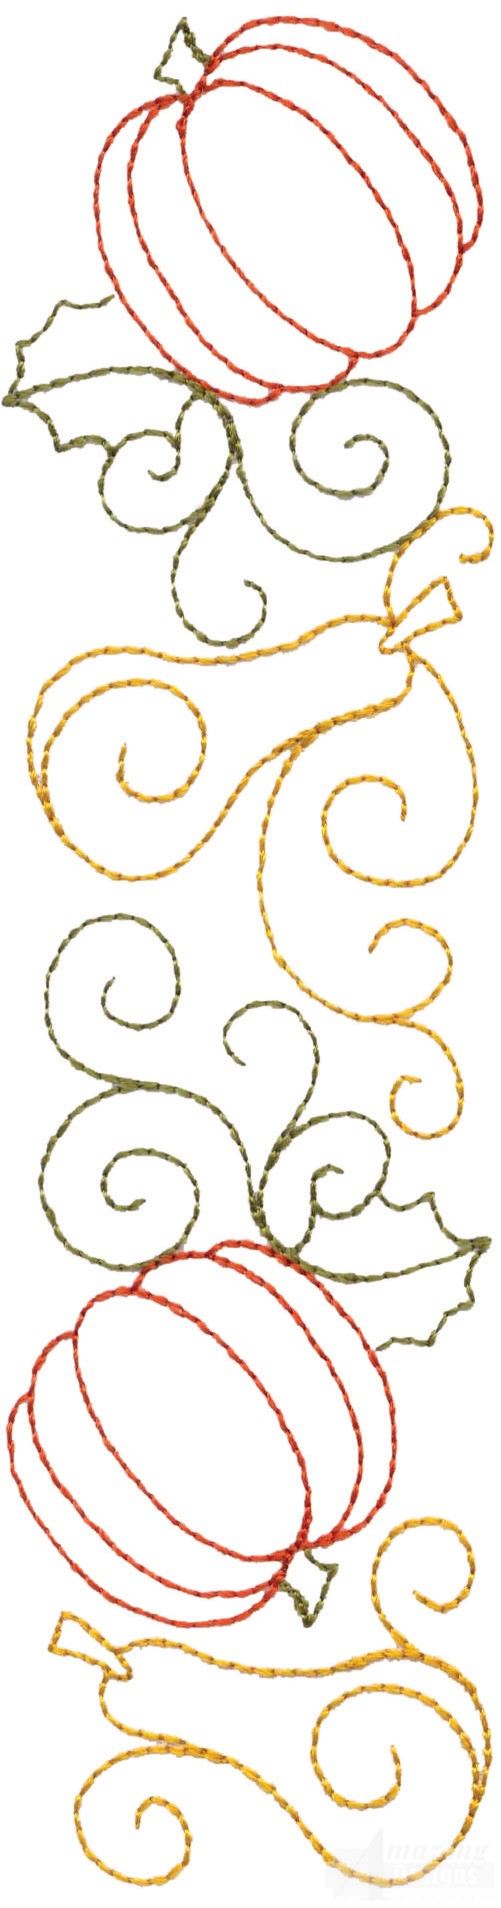 Line Drawing Embroidery : Pumpkin and squash line embroidery design